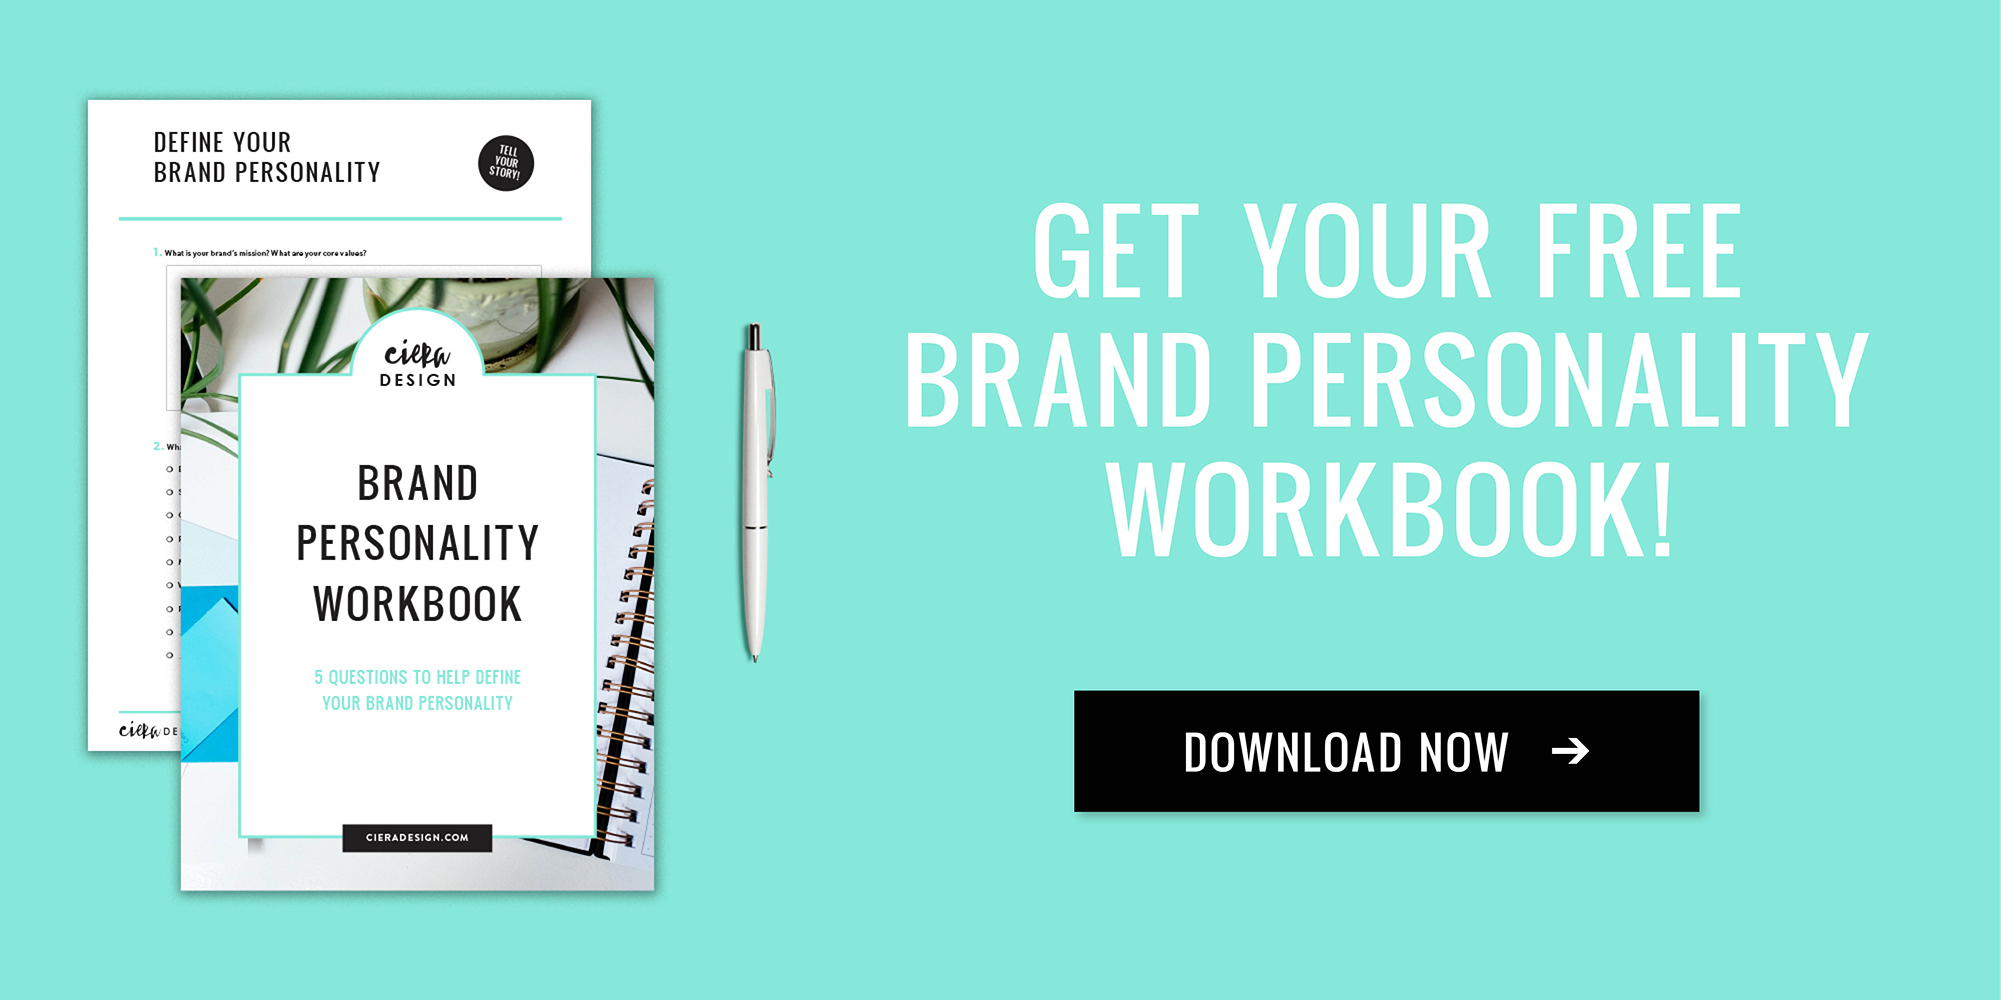 Get Your Free Brand Personality Workbook